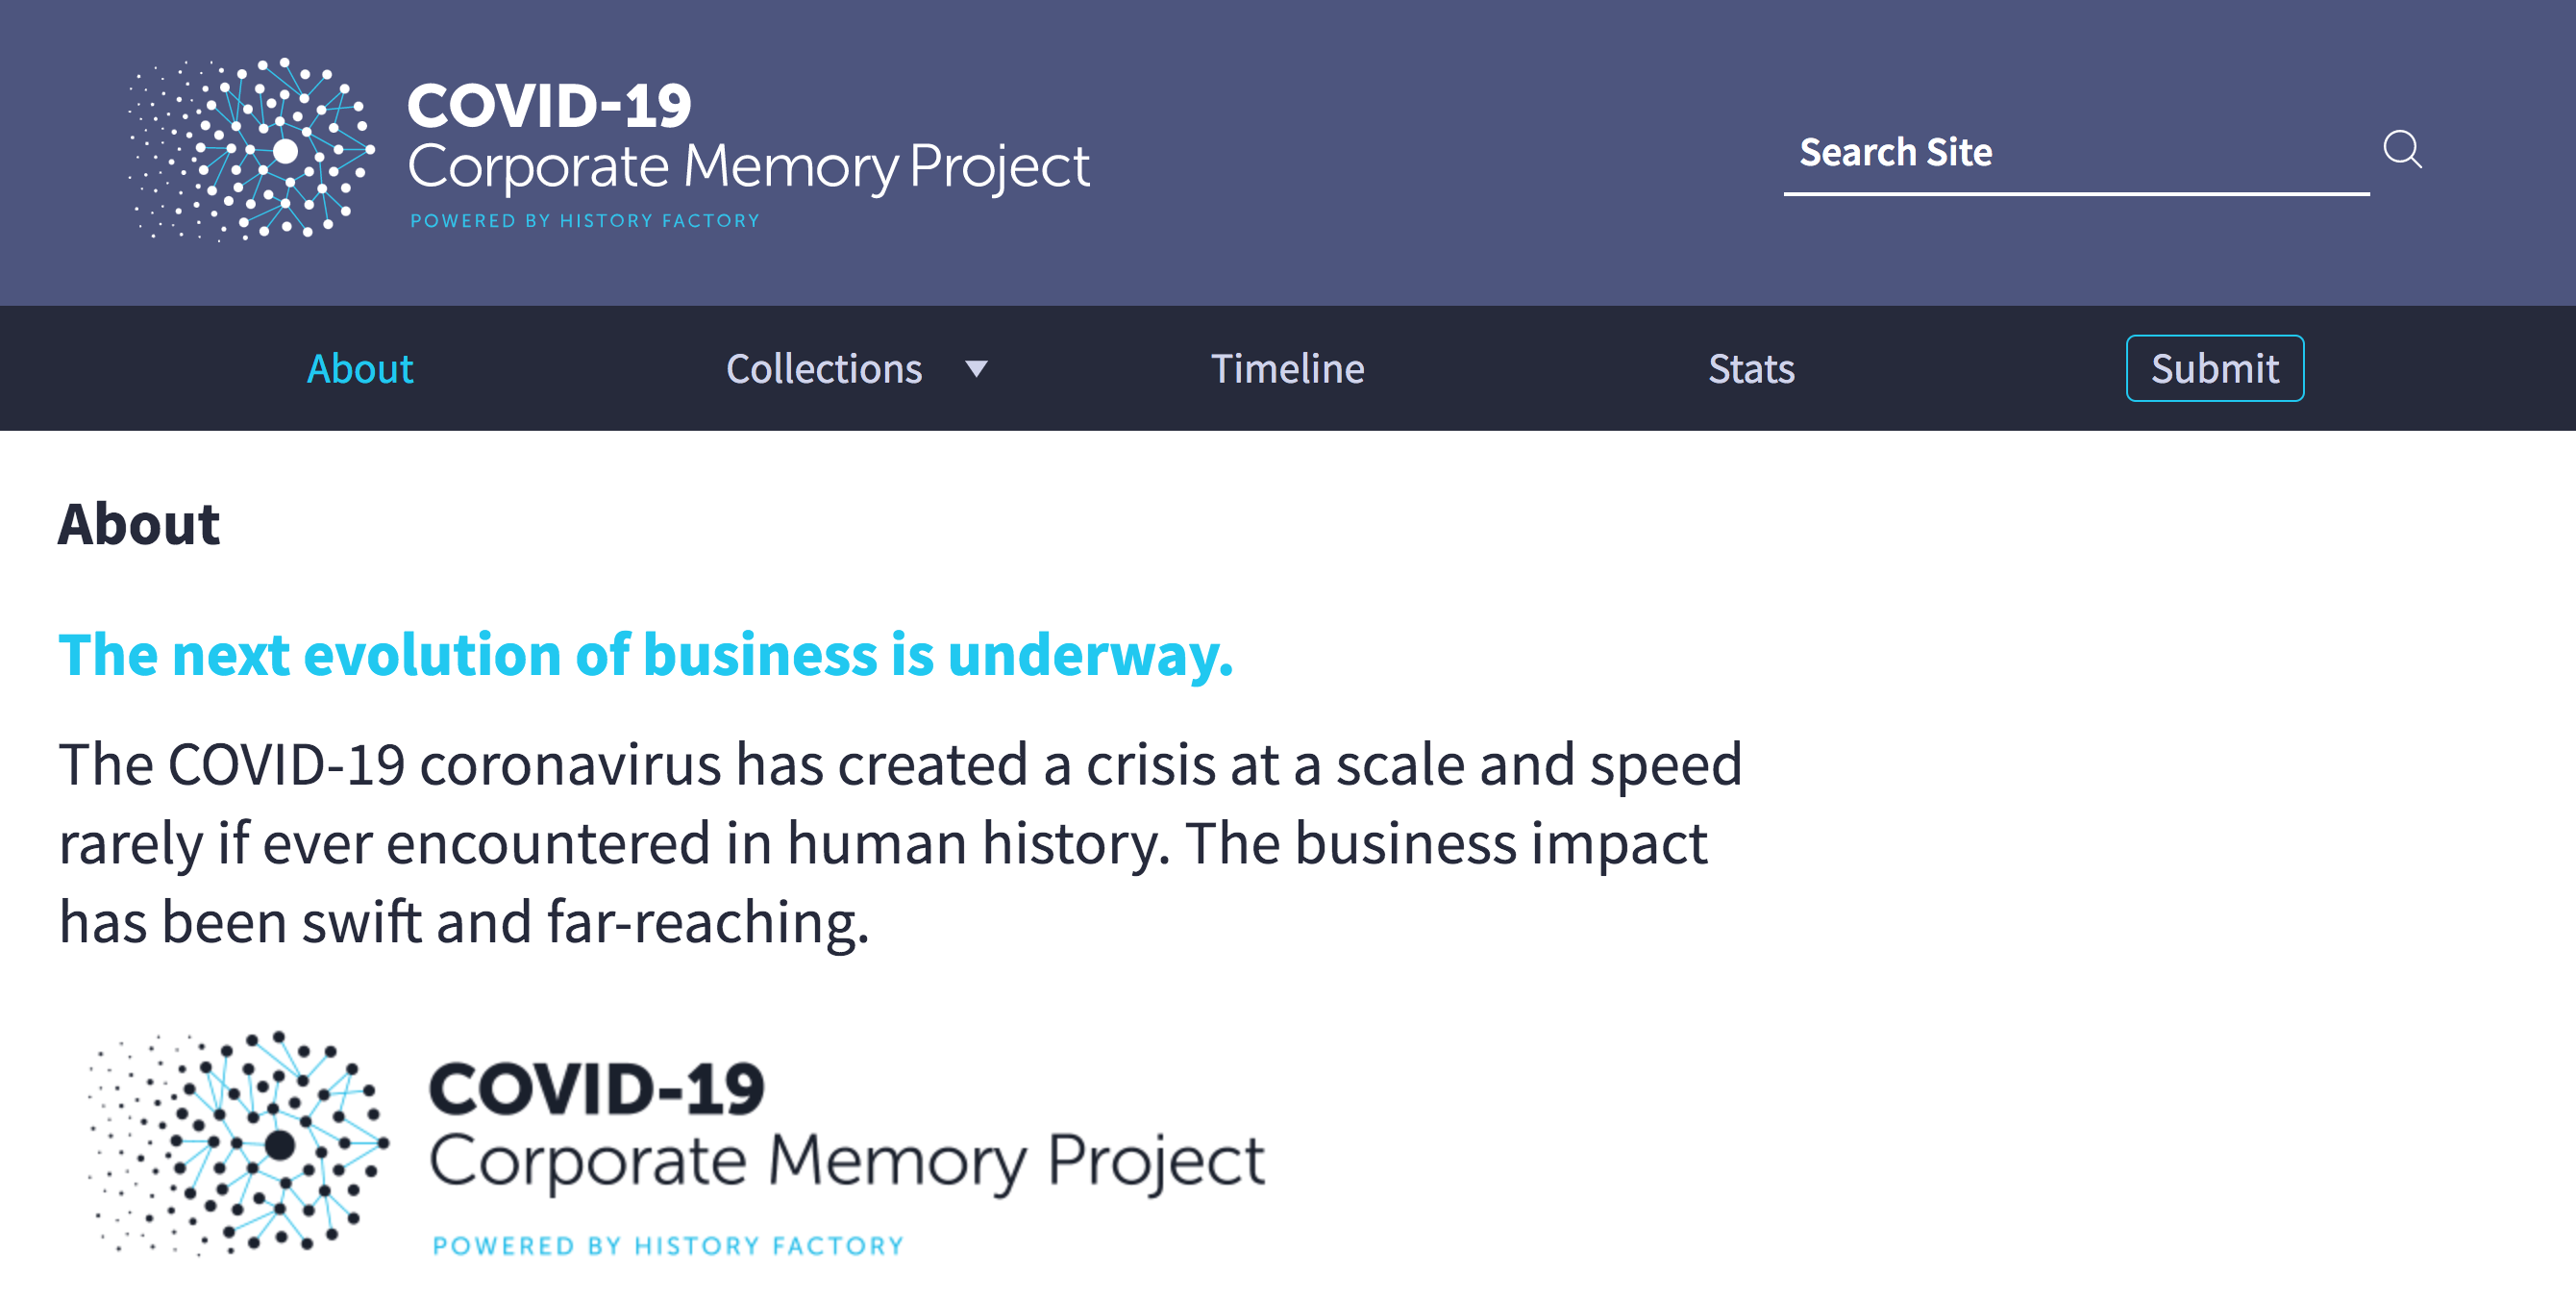 c19 corporate memory about us page